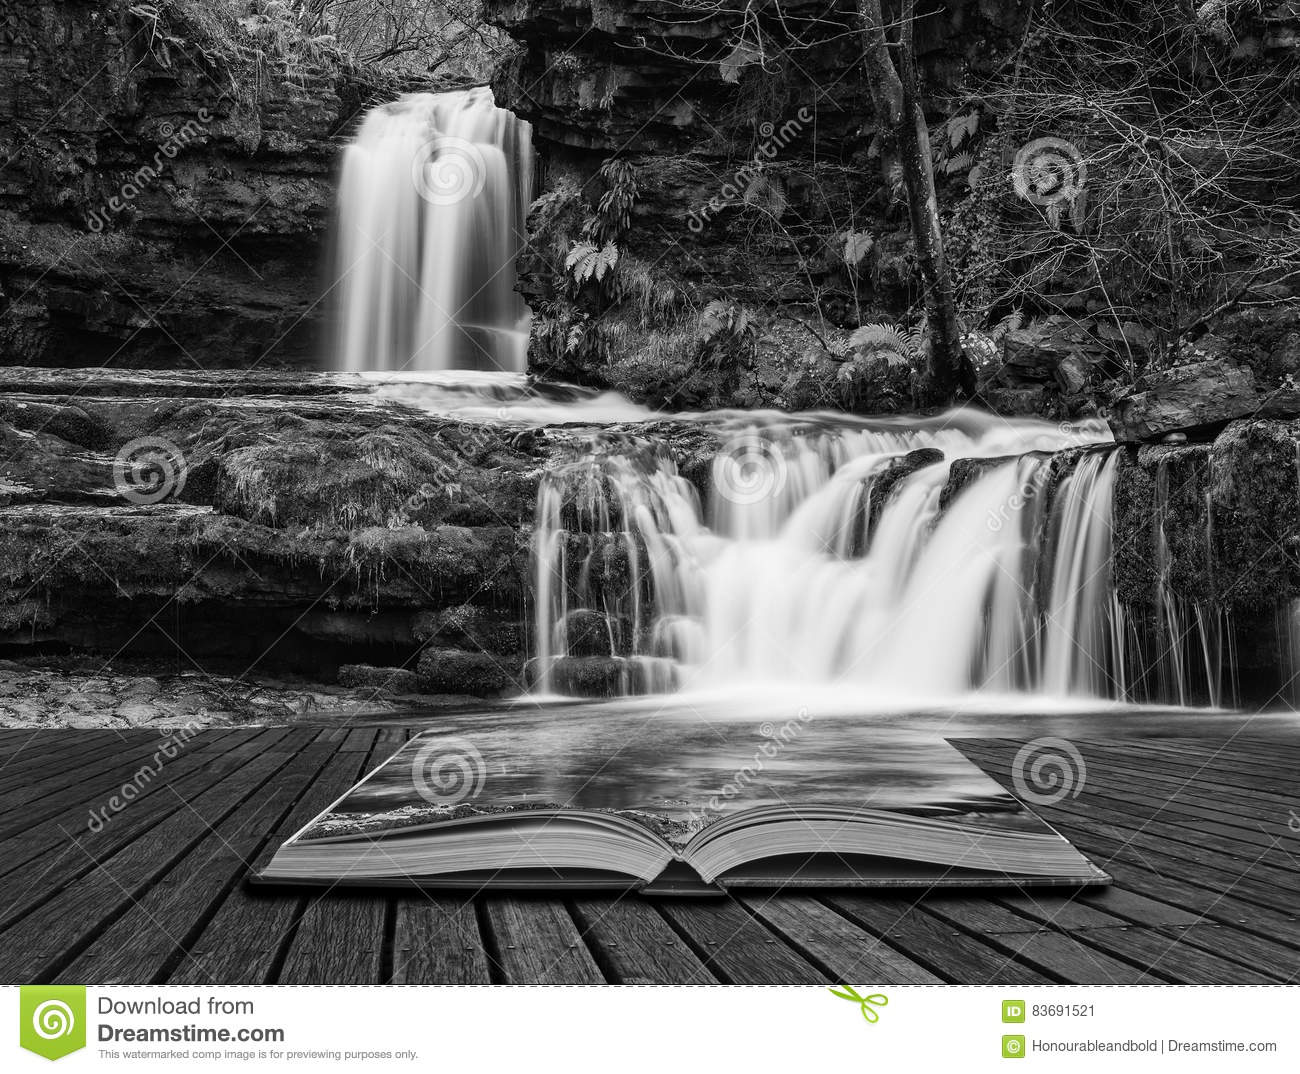 Beautiful black and white waterfall landscape image in forest du